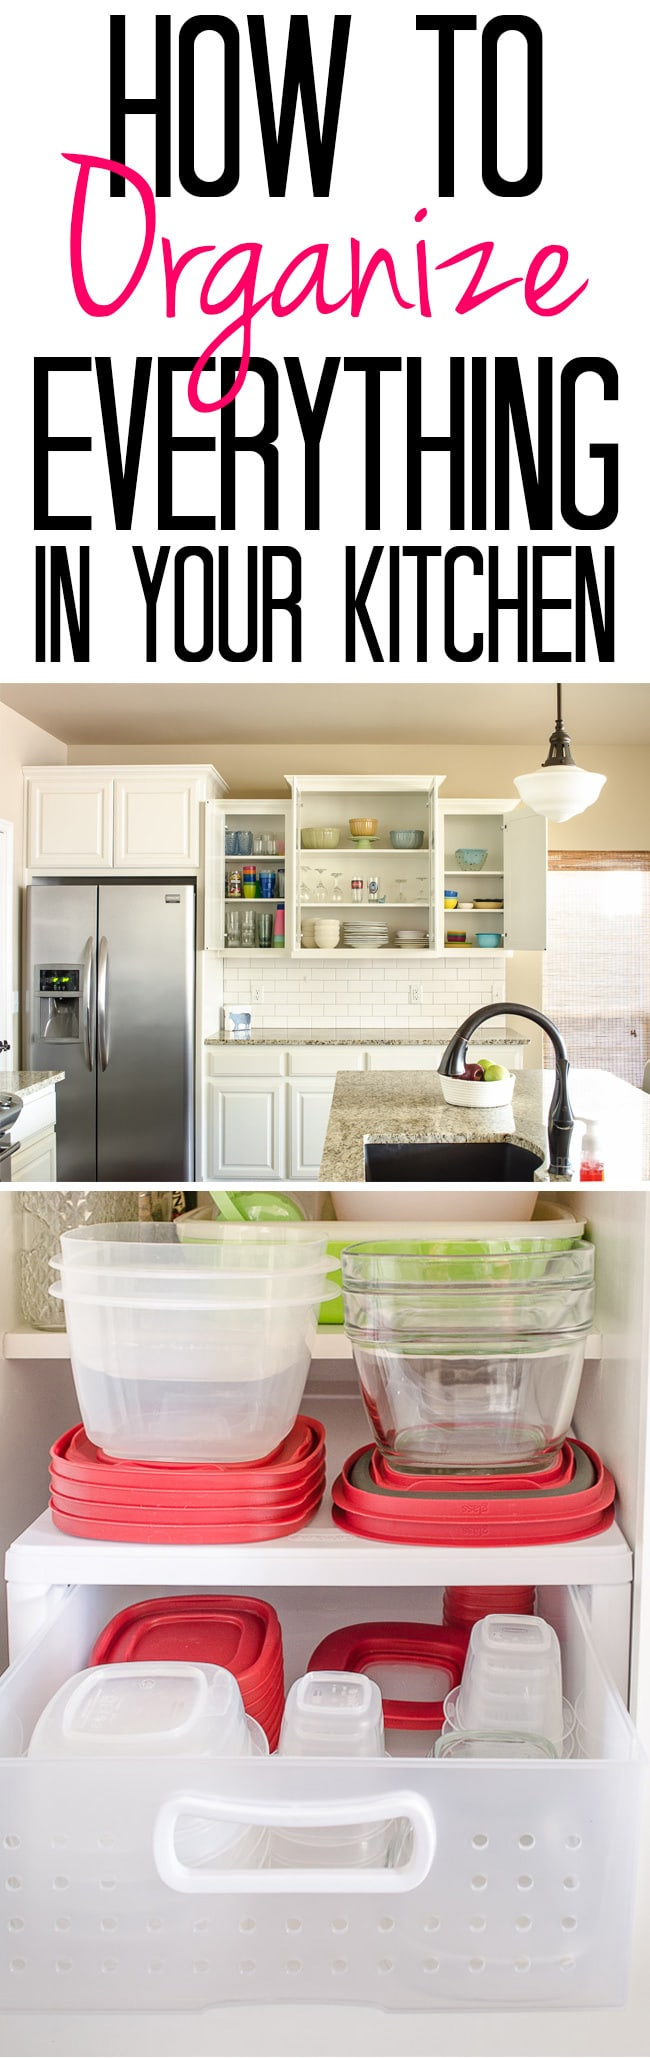 ideas to organize kitchen - 28 images - tips to organize a small ...